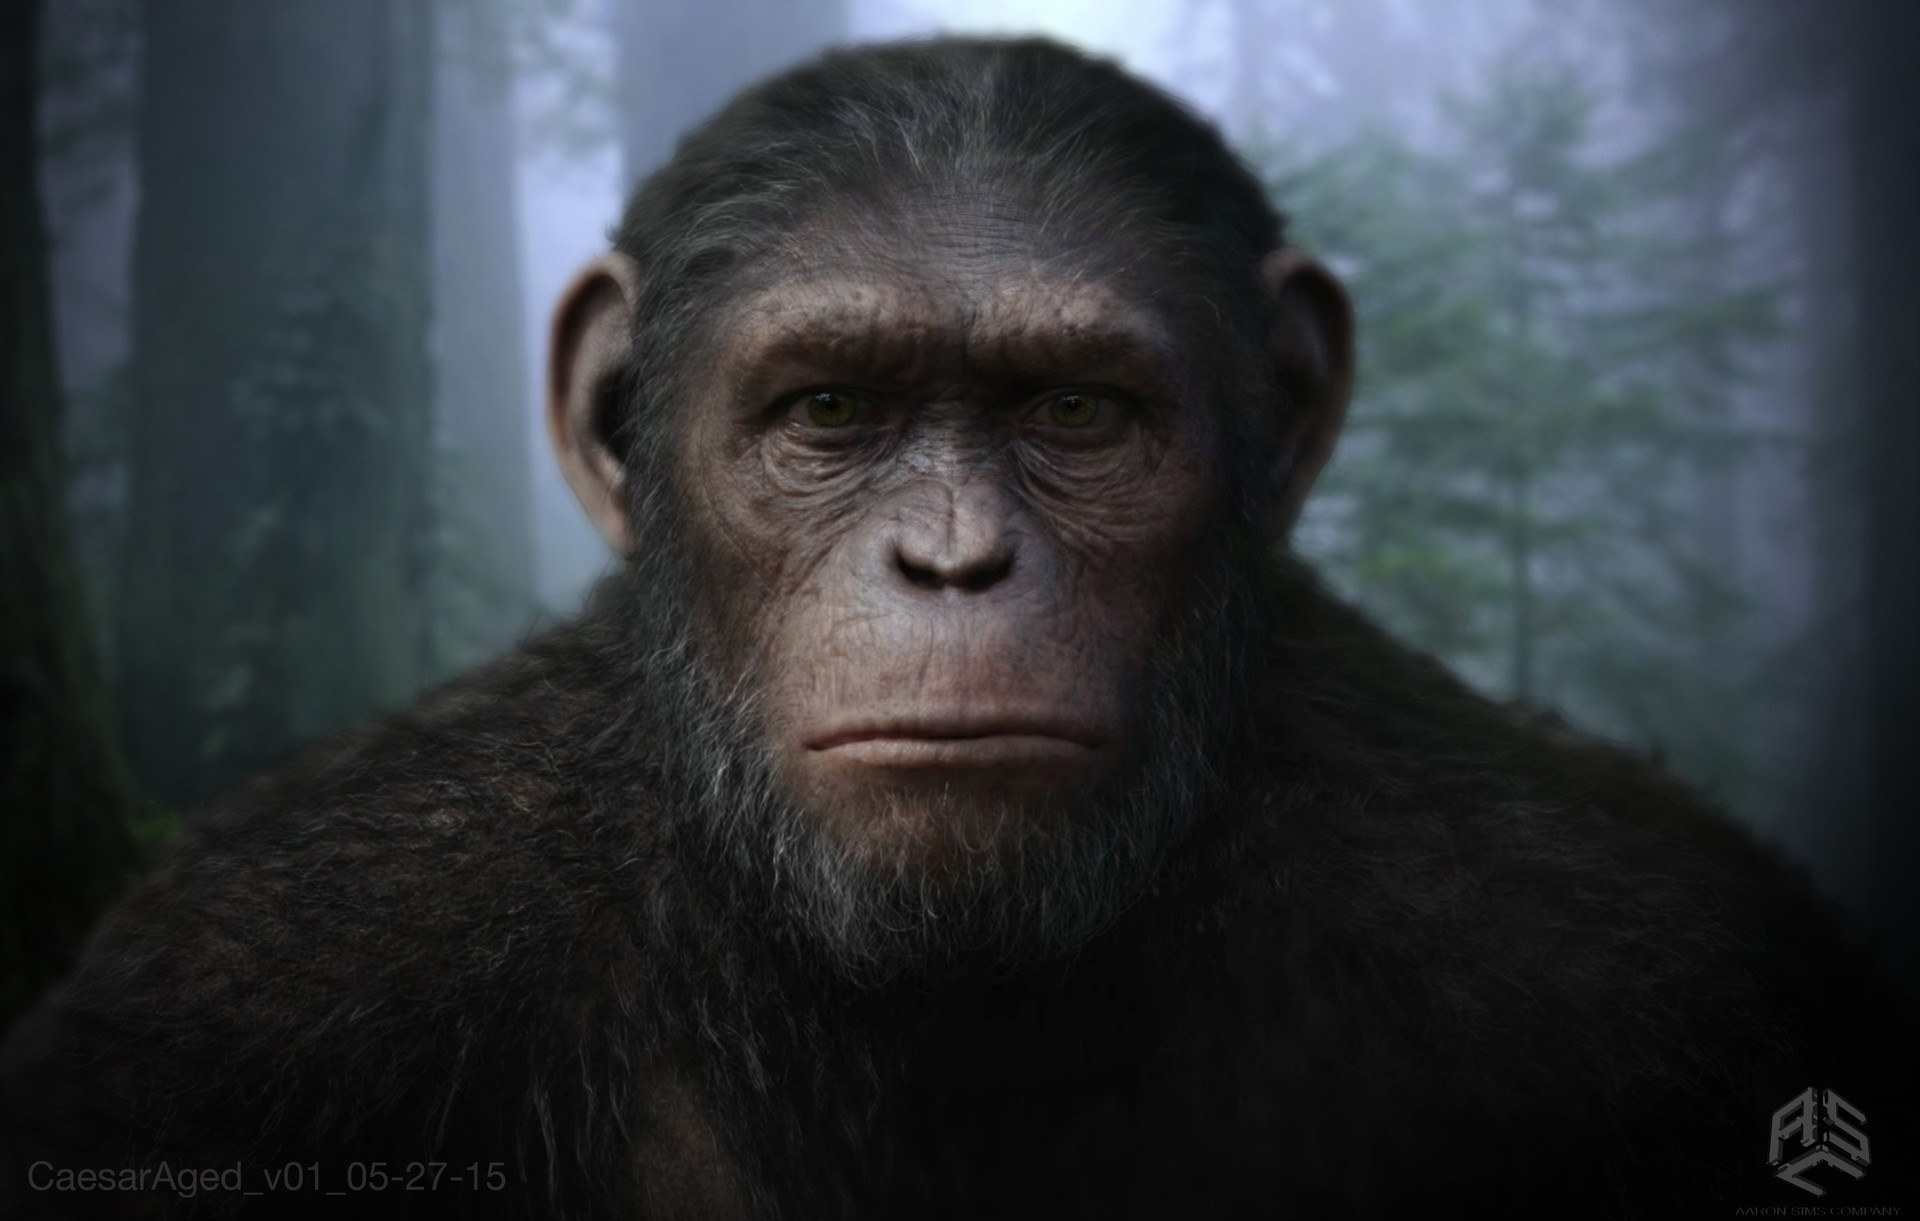 aaron sims creative war for the planet of the apes